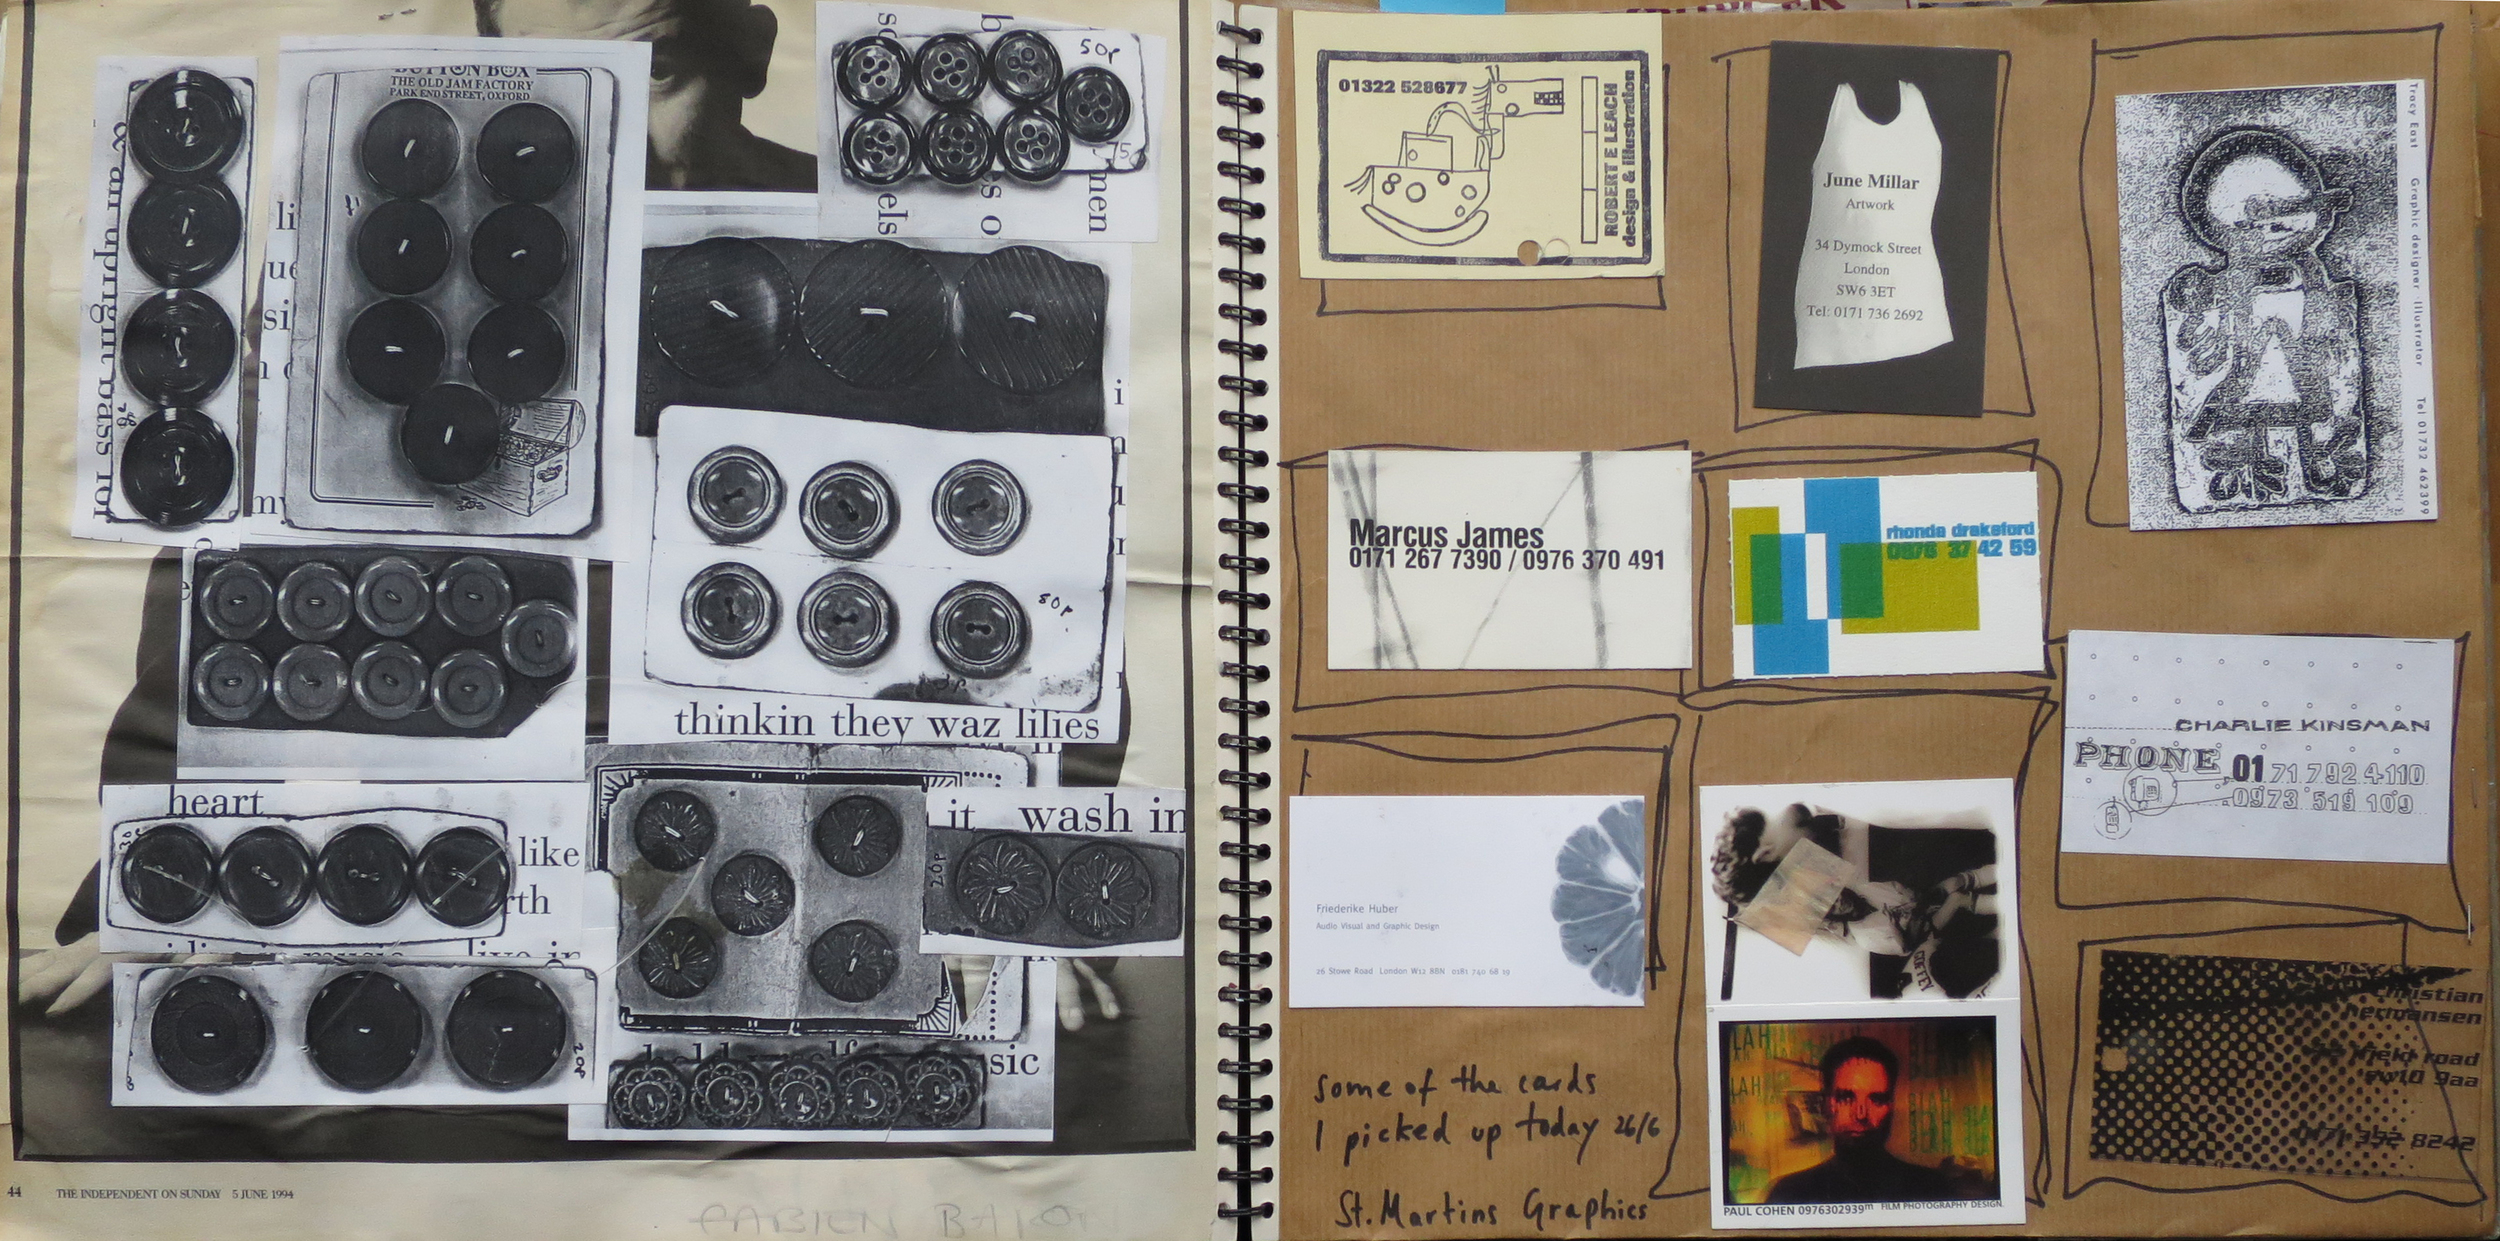 Photocopied vintage buttons and cards from Central St Martins degree show - including Rhonda Drakeford, co-owner of Darkroom!